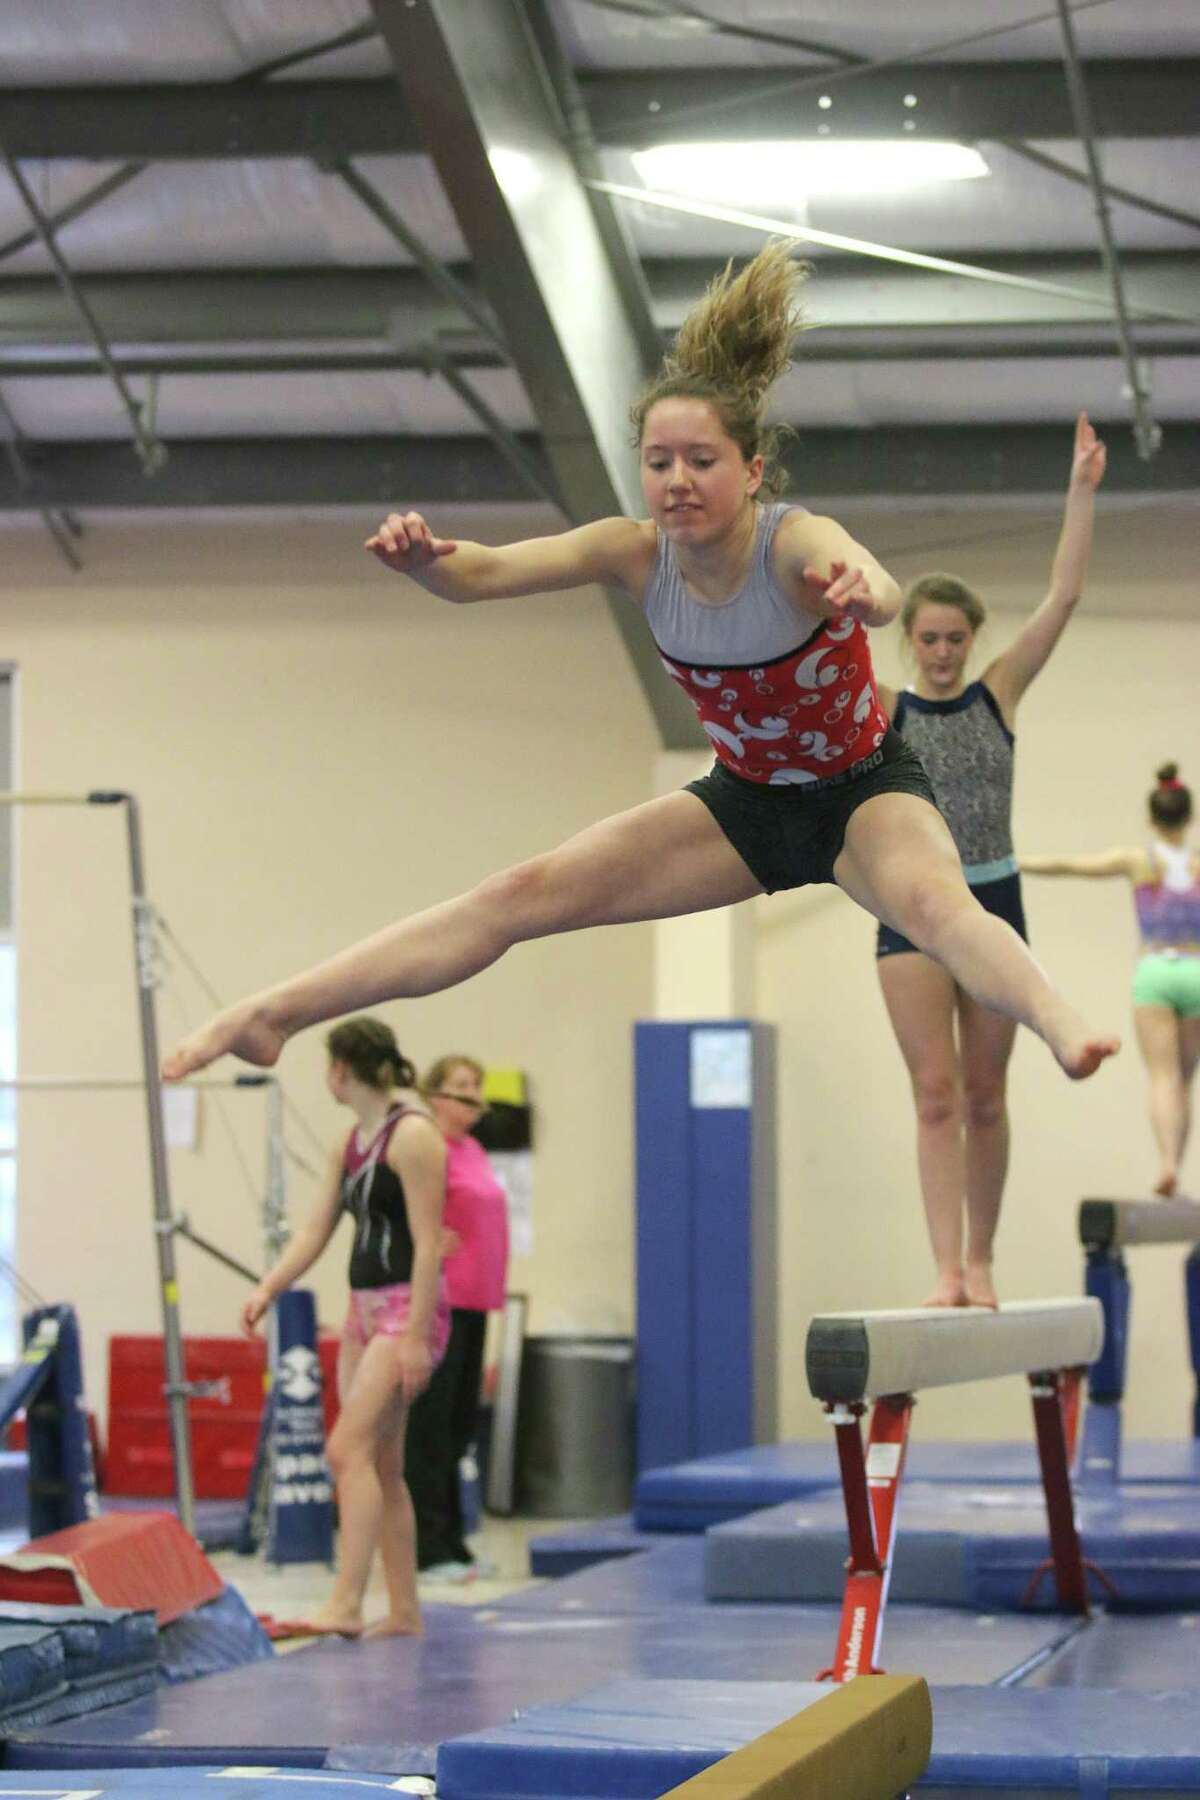 Gymnast Julia Van Horne practices on the balance beam Thursday with the Saratoga Regional YMCA Springettes at their gym in Wilton March 31, 2016. (Ed Burke/Special to The Times Union)